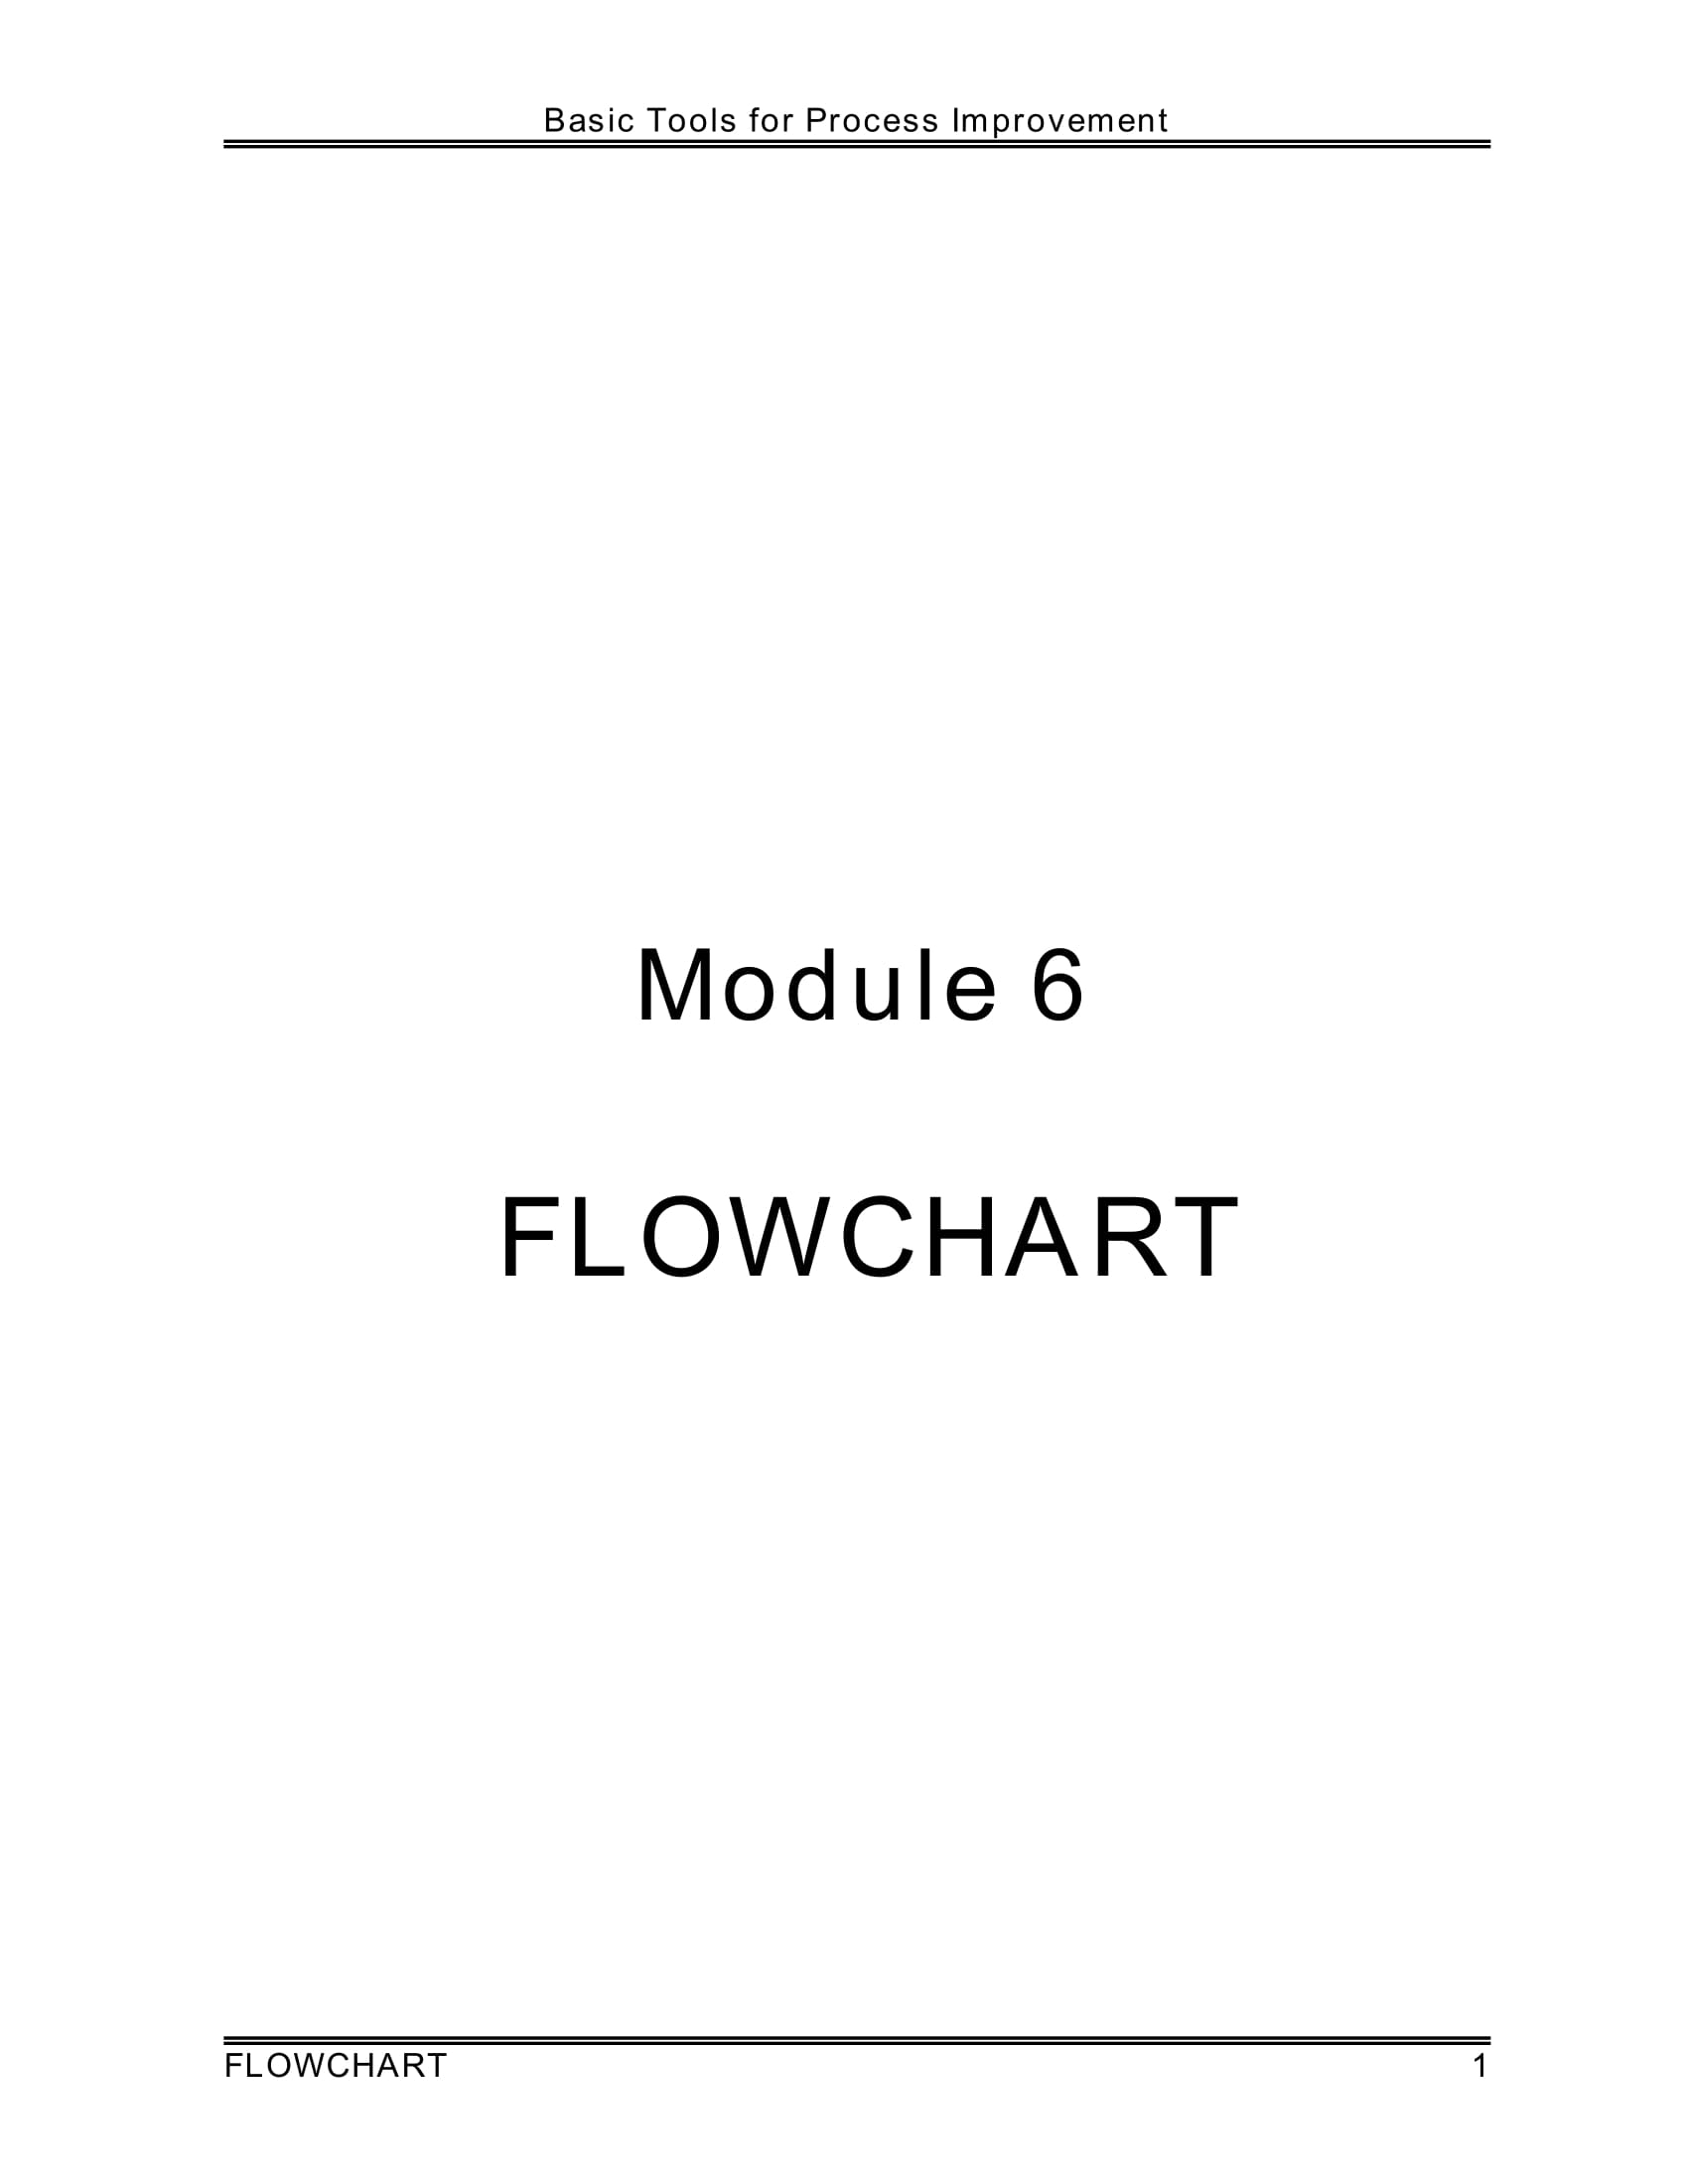 9 Process Flow Chart Examples Pdf